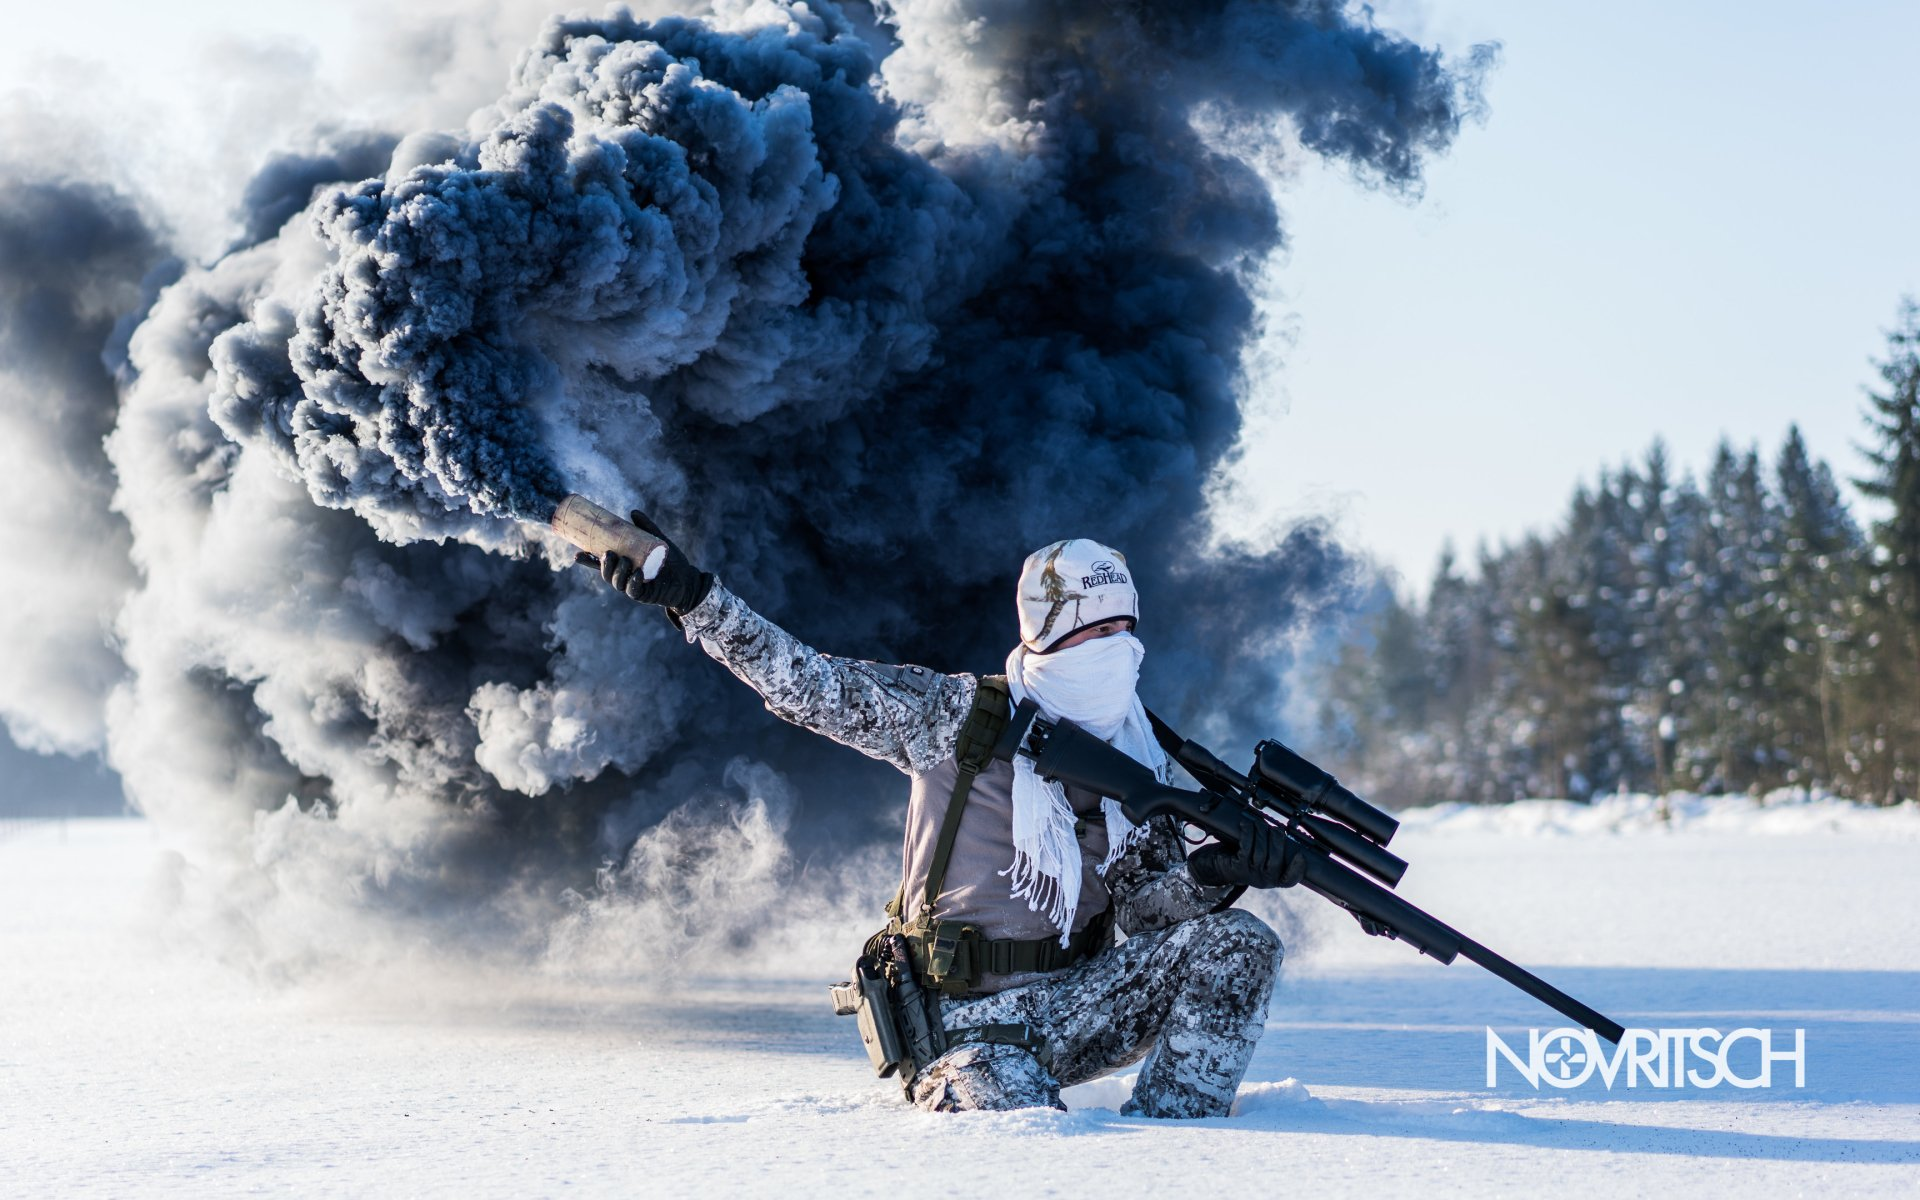 Military - Soldier  Snow Sniper Rifle Smoke Grenade Airsoft Winter Military Wallpaper